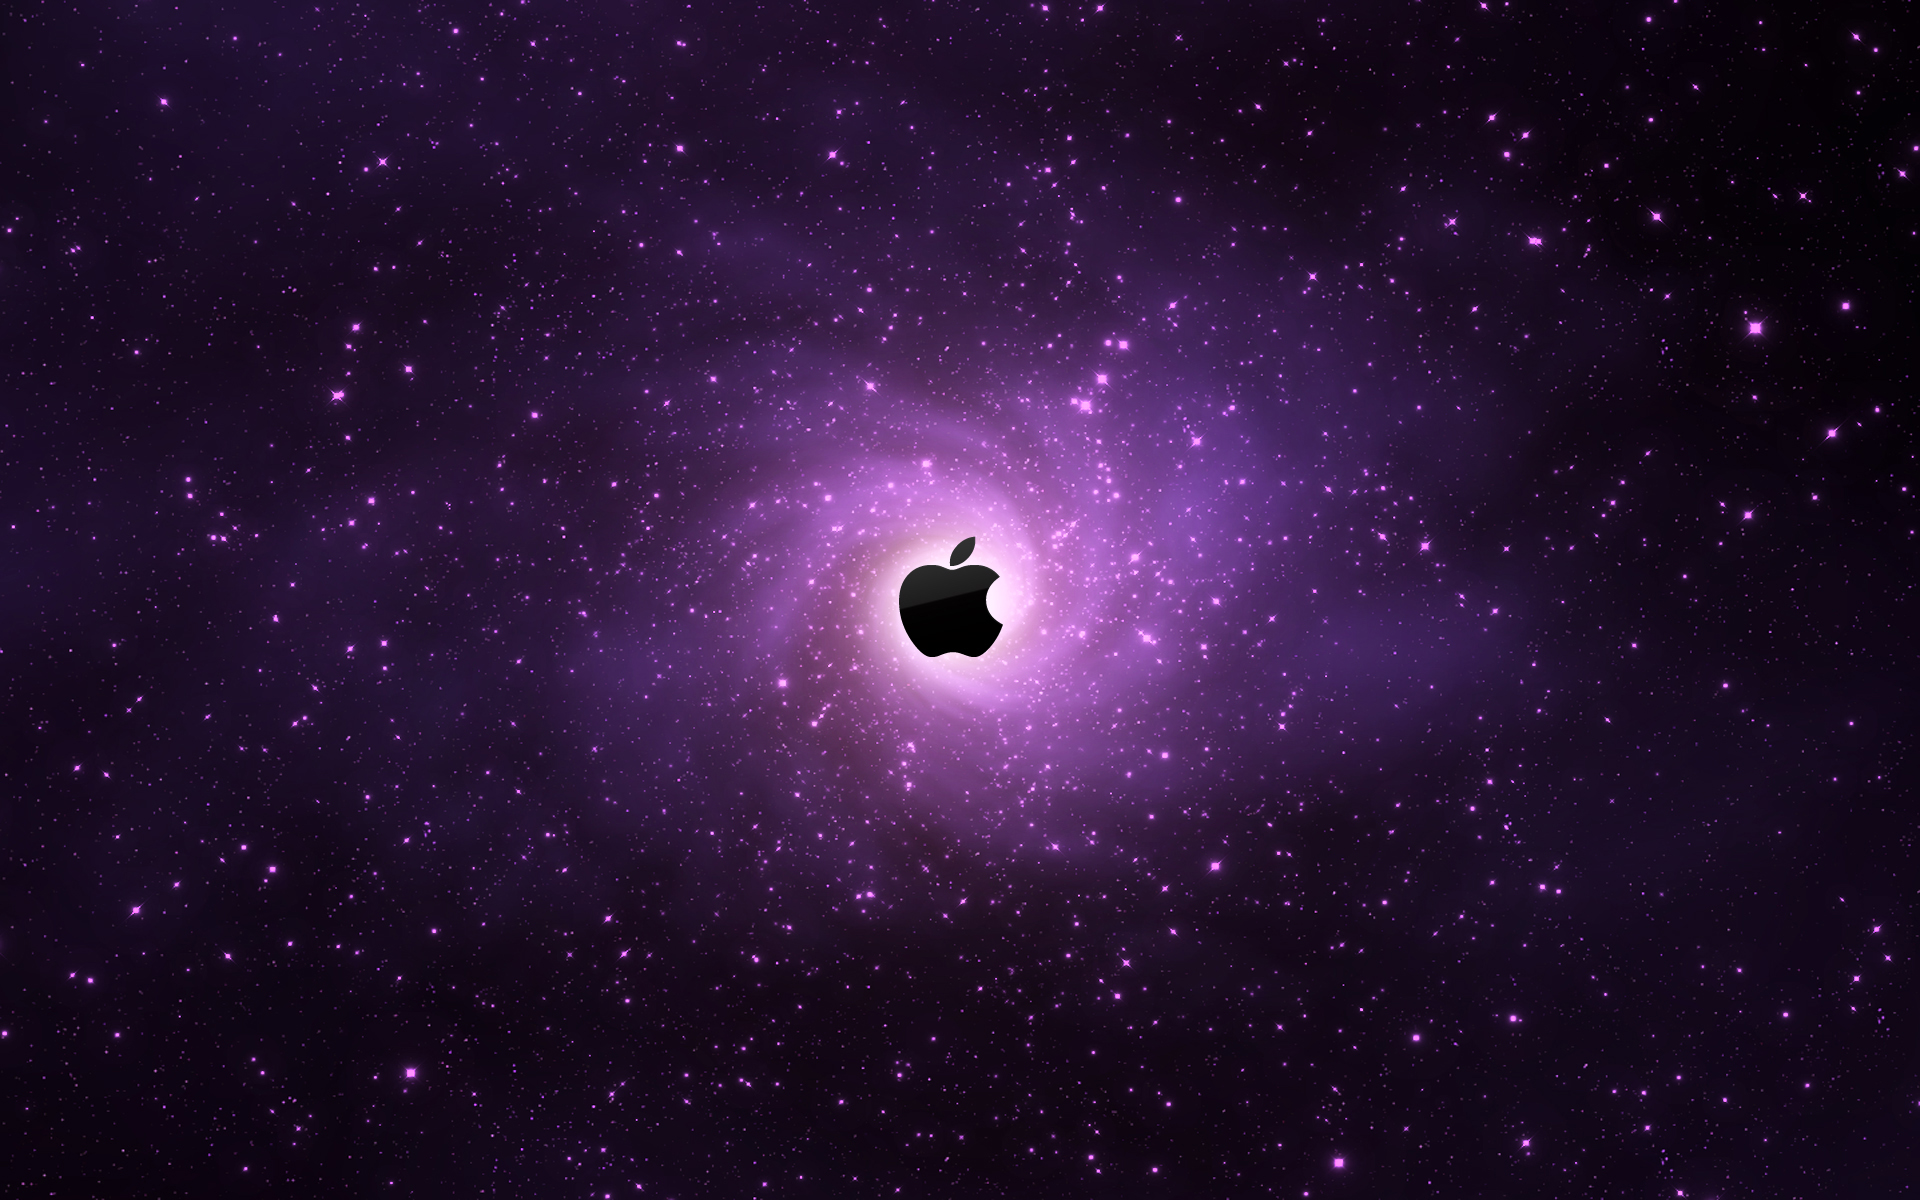 Apple Backrounds Wallpaper